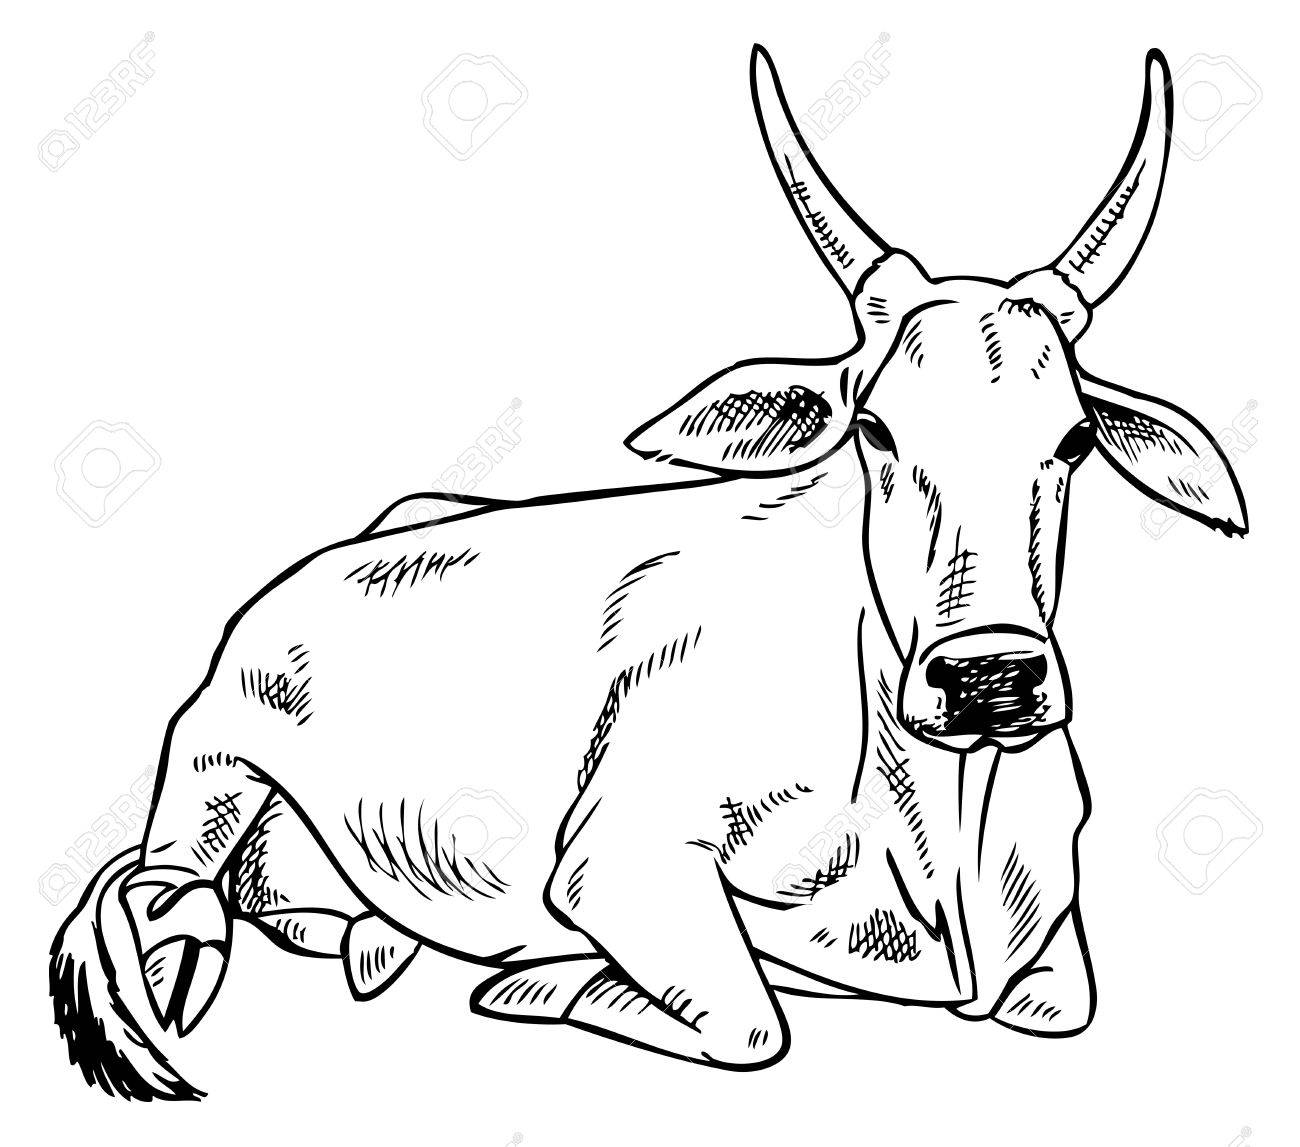 1300x1147 Hand Drawing On A White Background Indian Zebu Cow Royalty Free